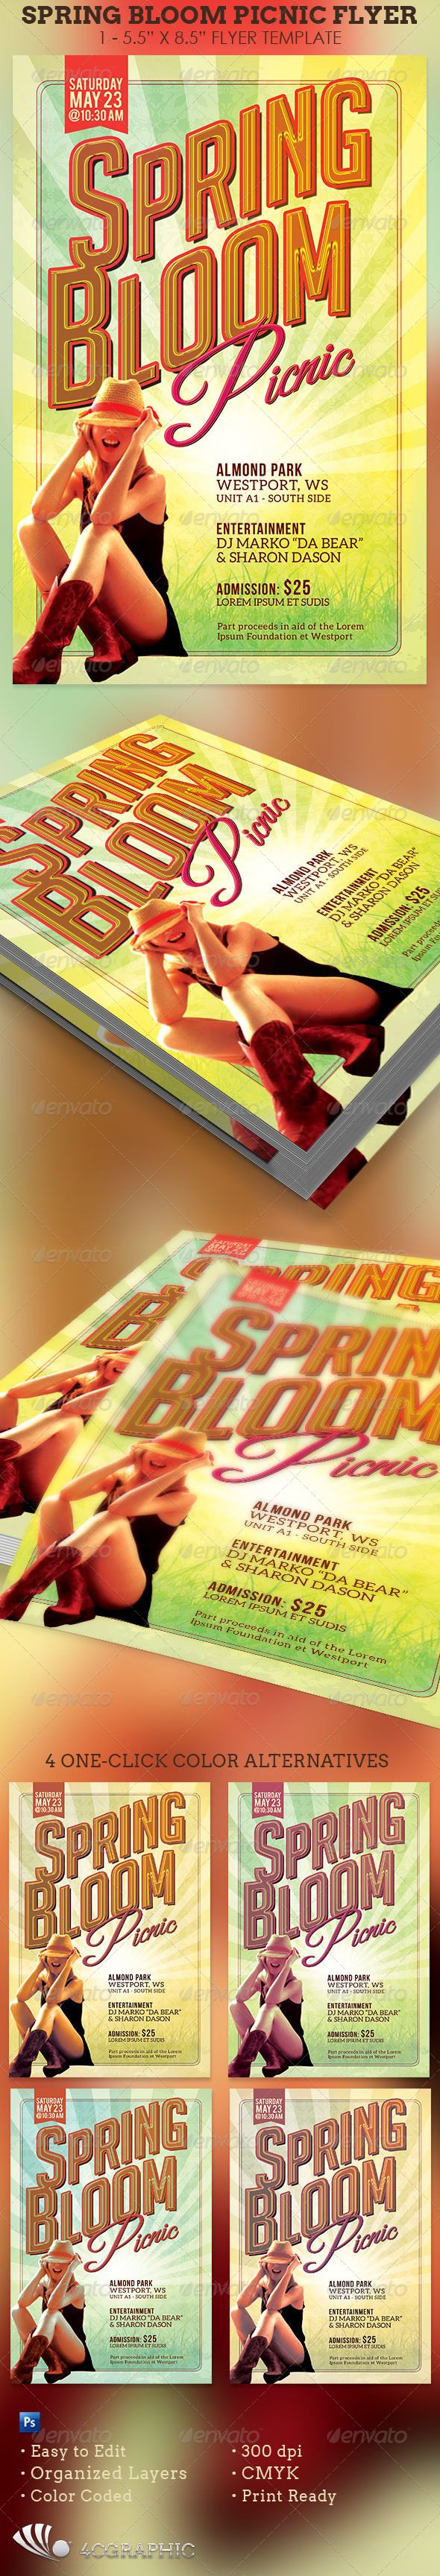 best images about country western print templates spring bloom picnic flyer template